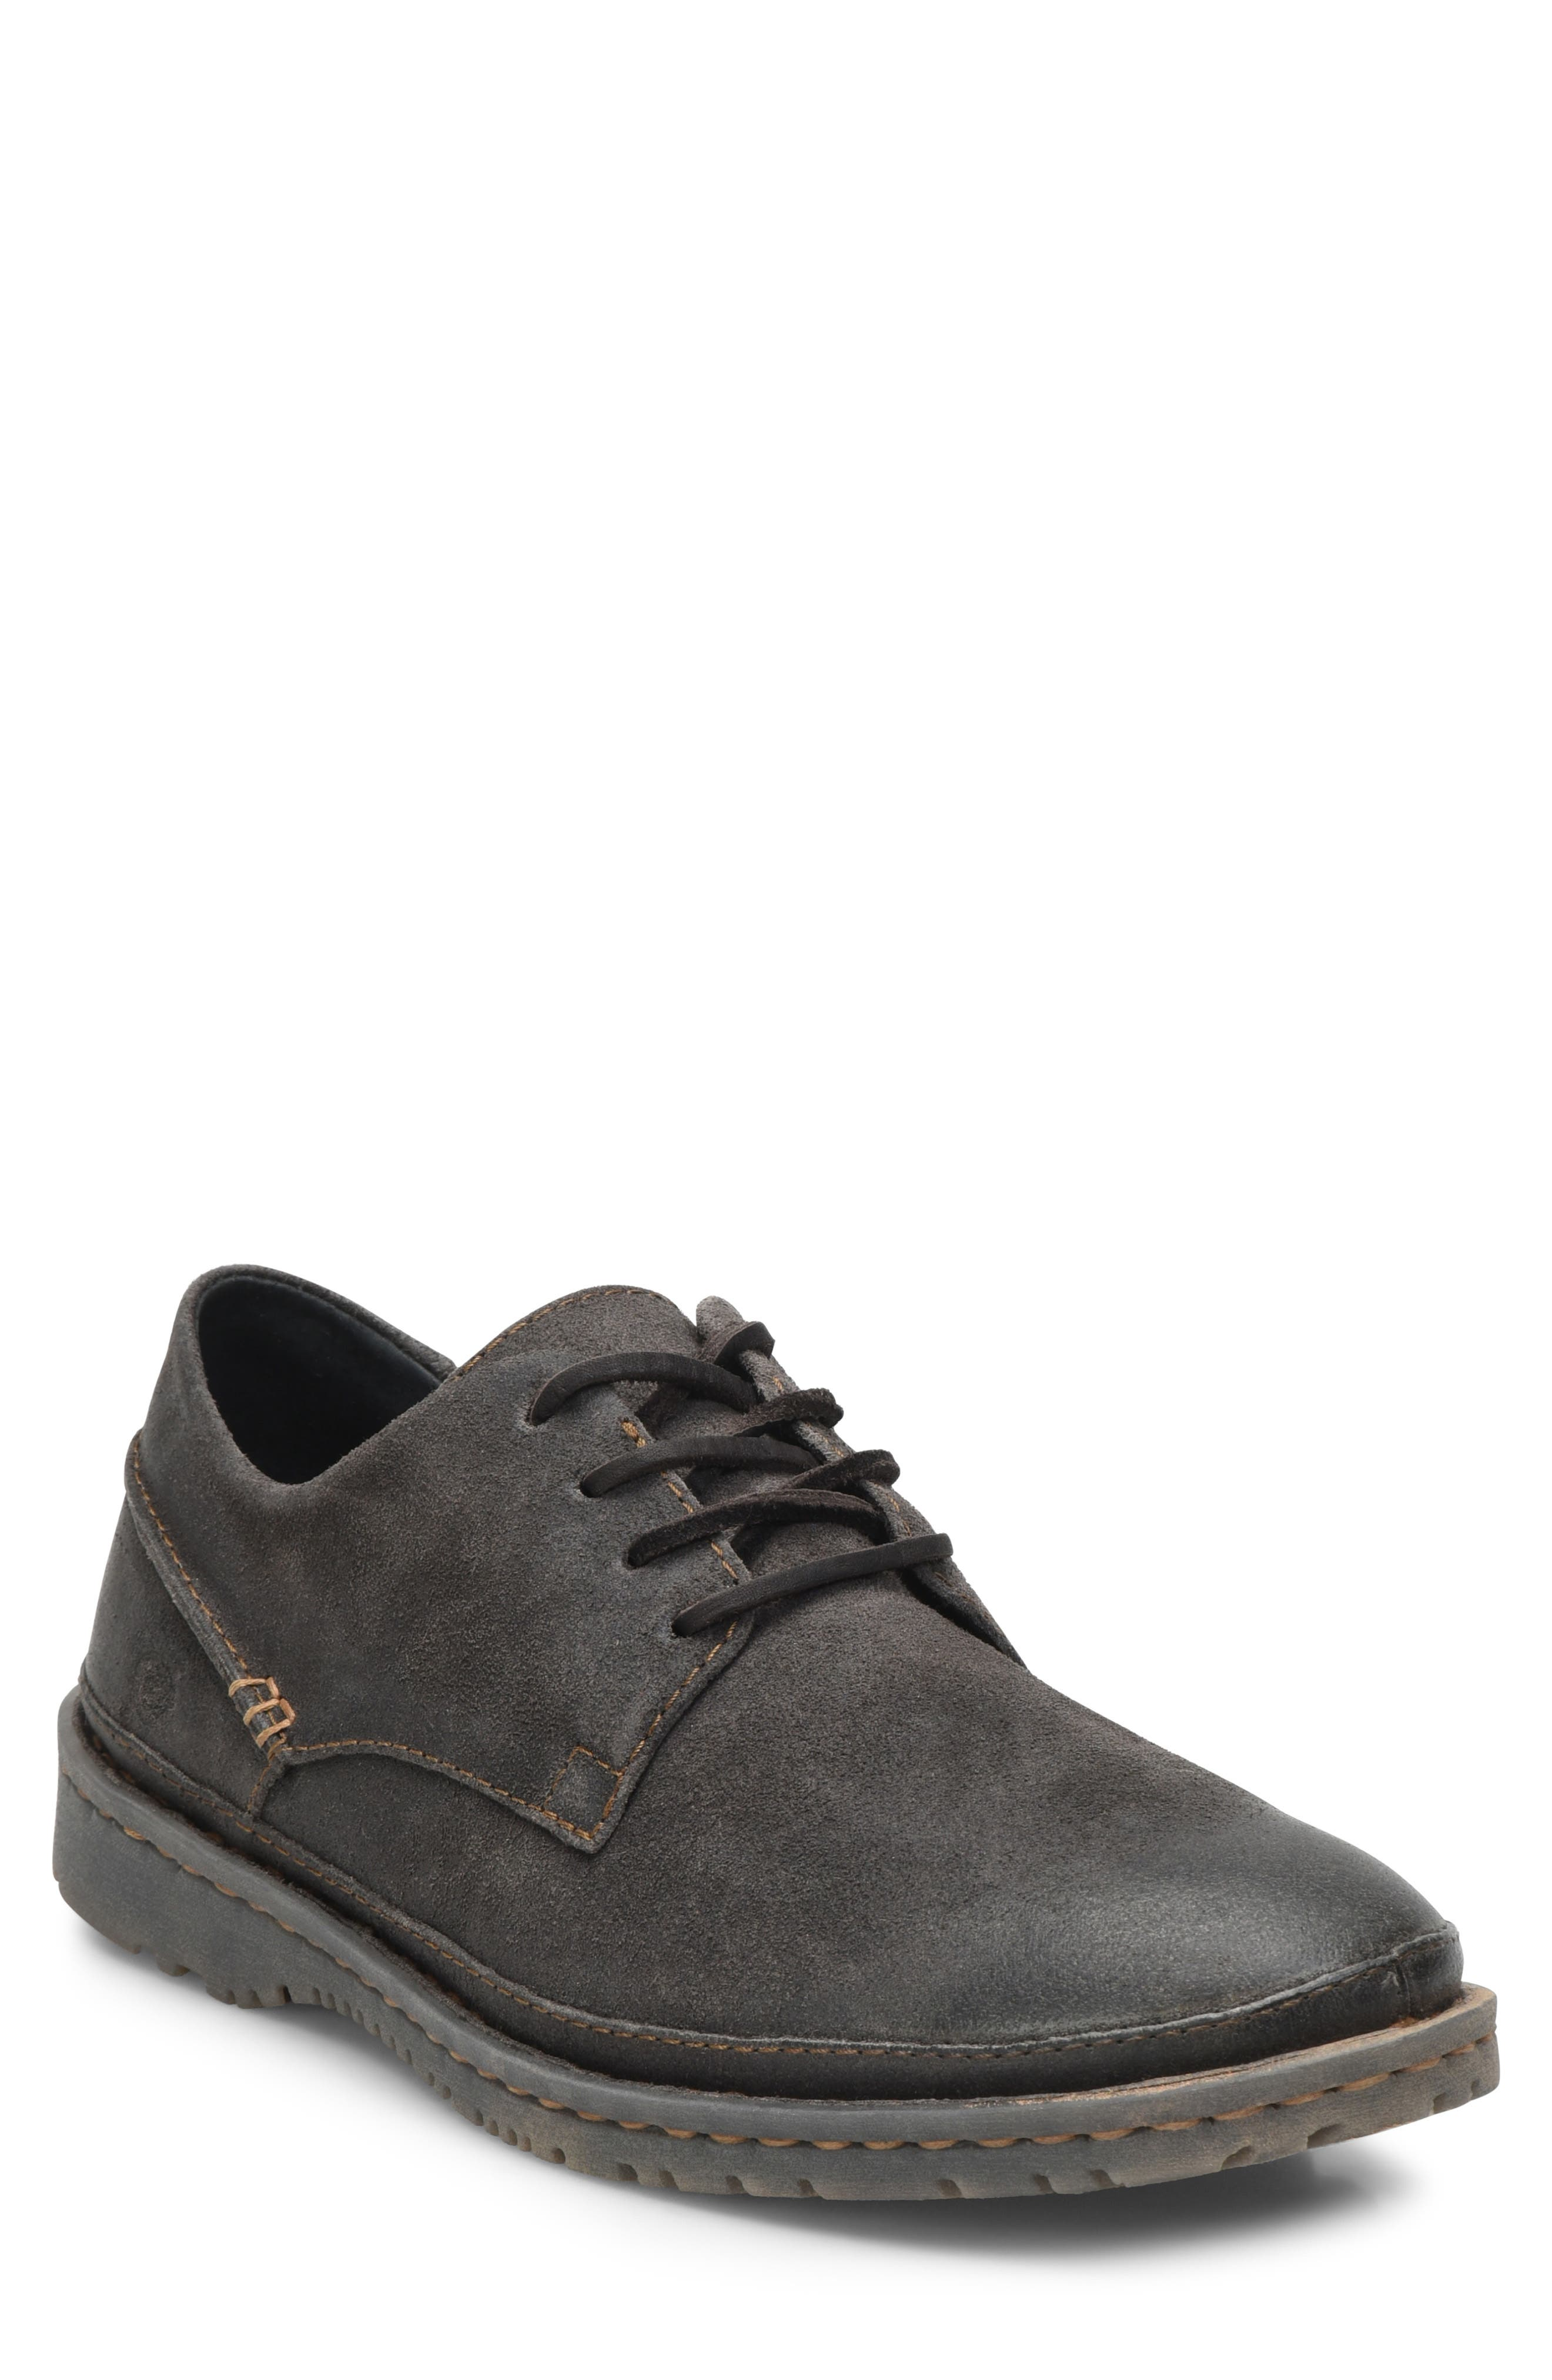 Gilles Plain Toe Derby,                             Main thumbnail 1, color,                             DARK GREY LEATHER